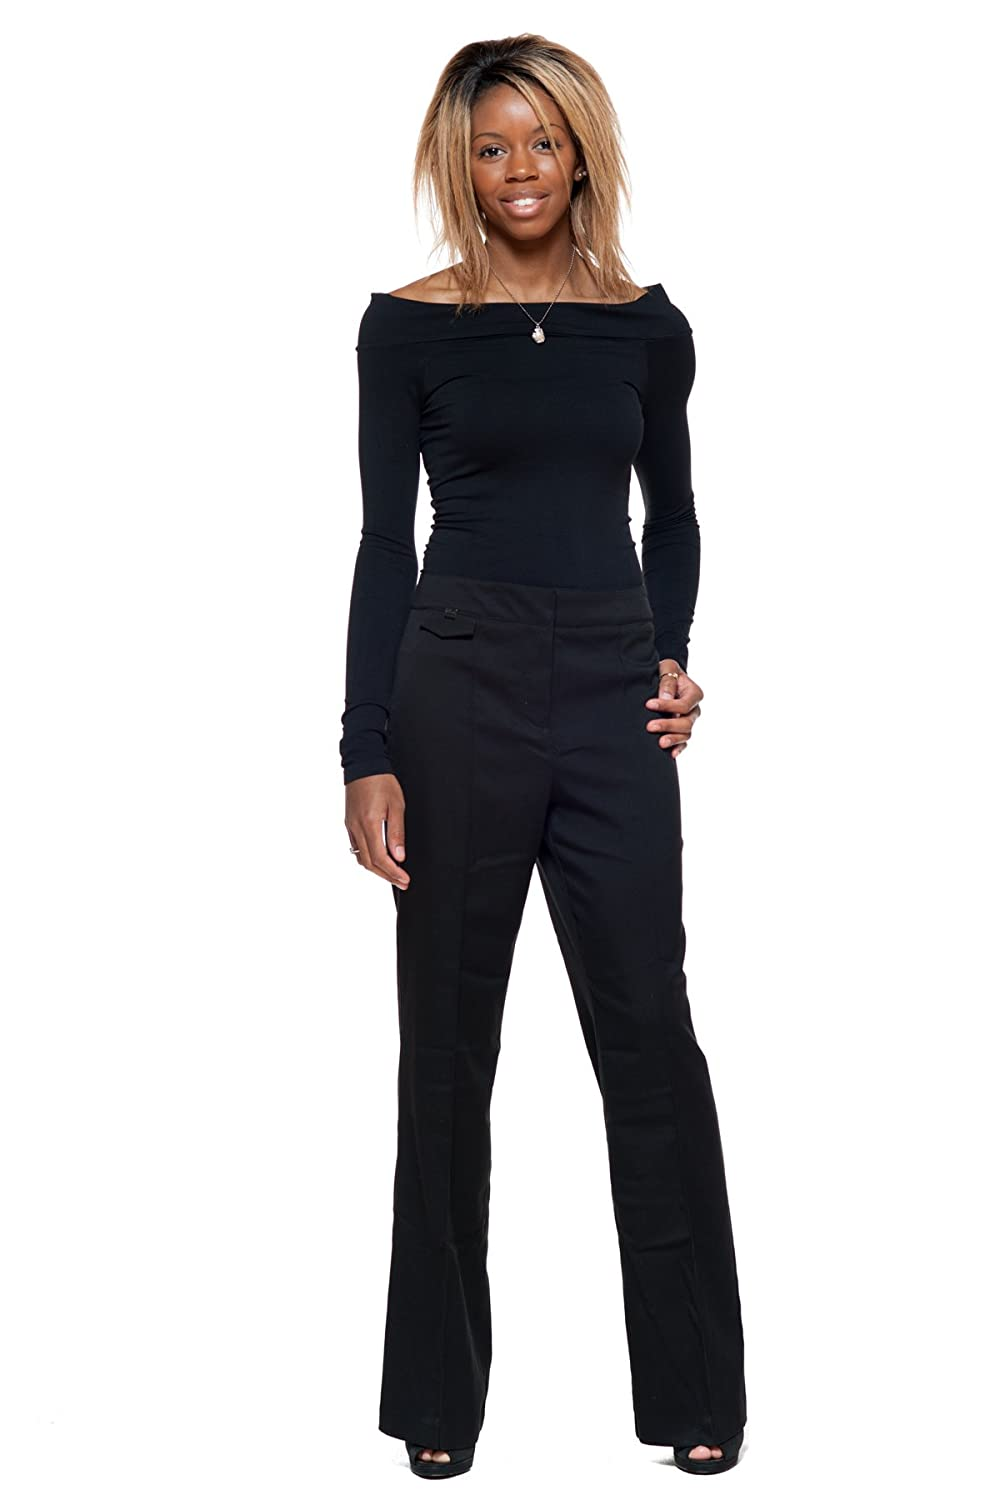 S.C. & Co Canada's Perfect Wide Leg Boot Cut Pant with Tummy Control 02) SCCO-63317CRpant